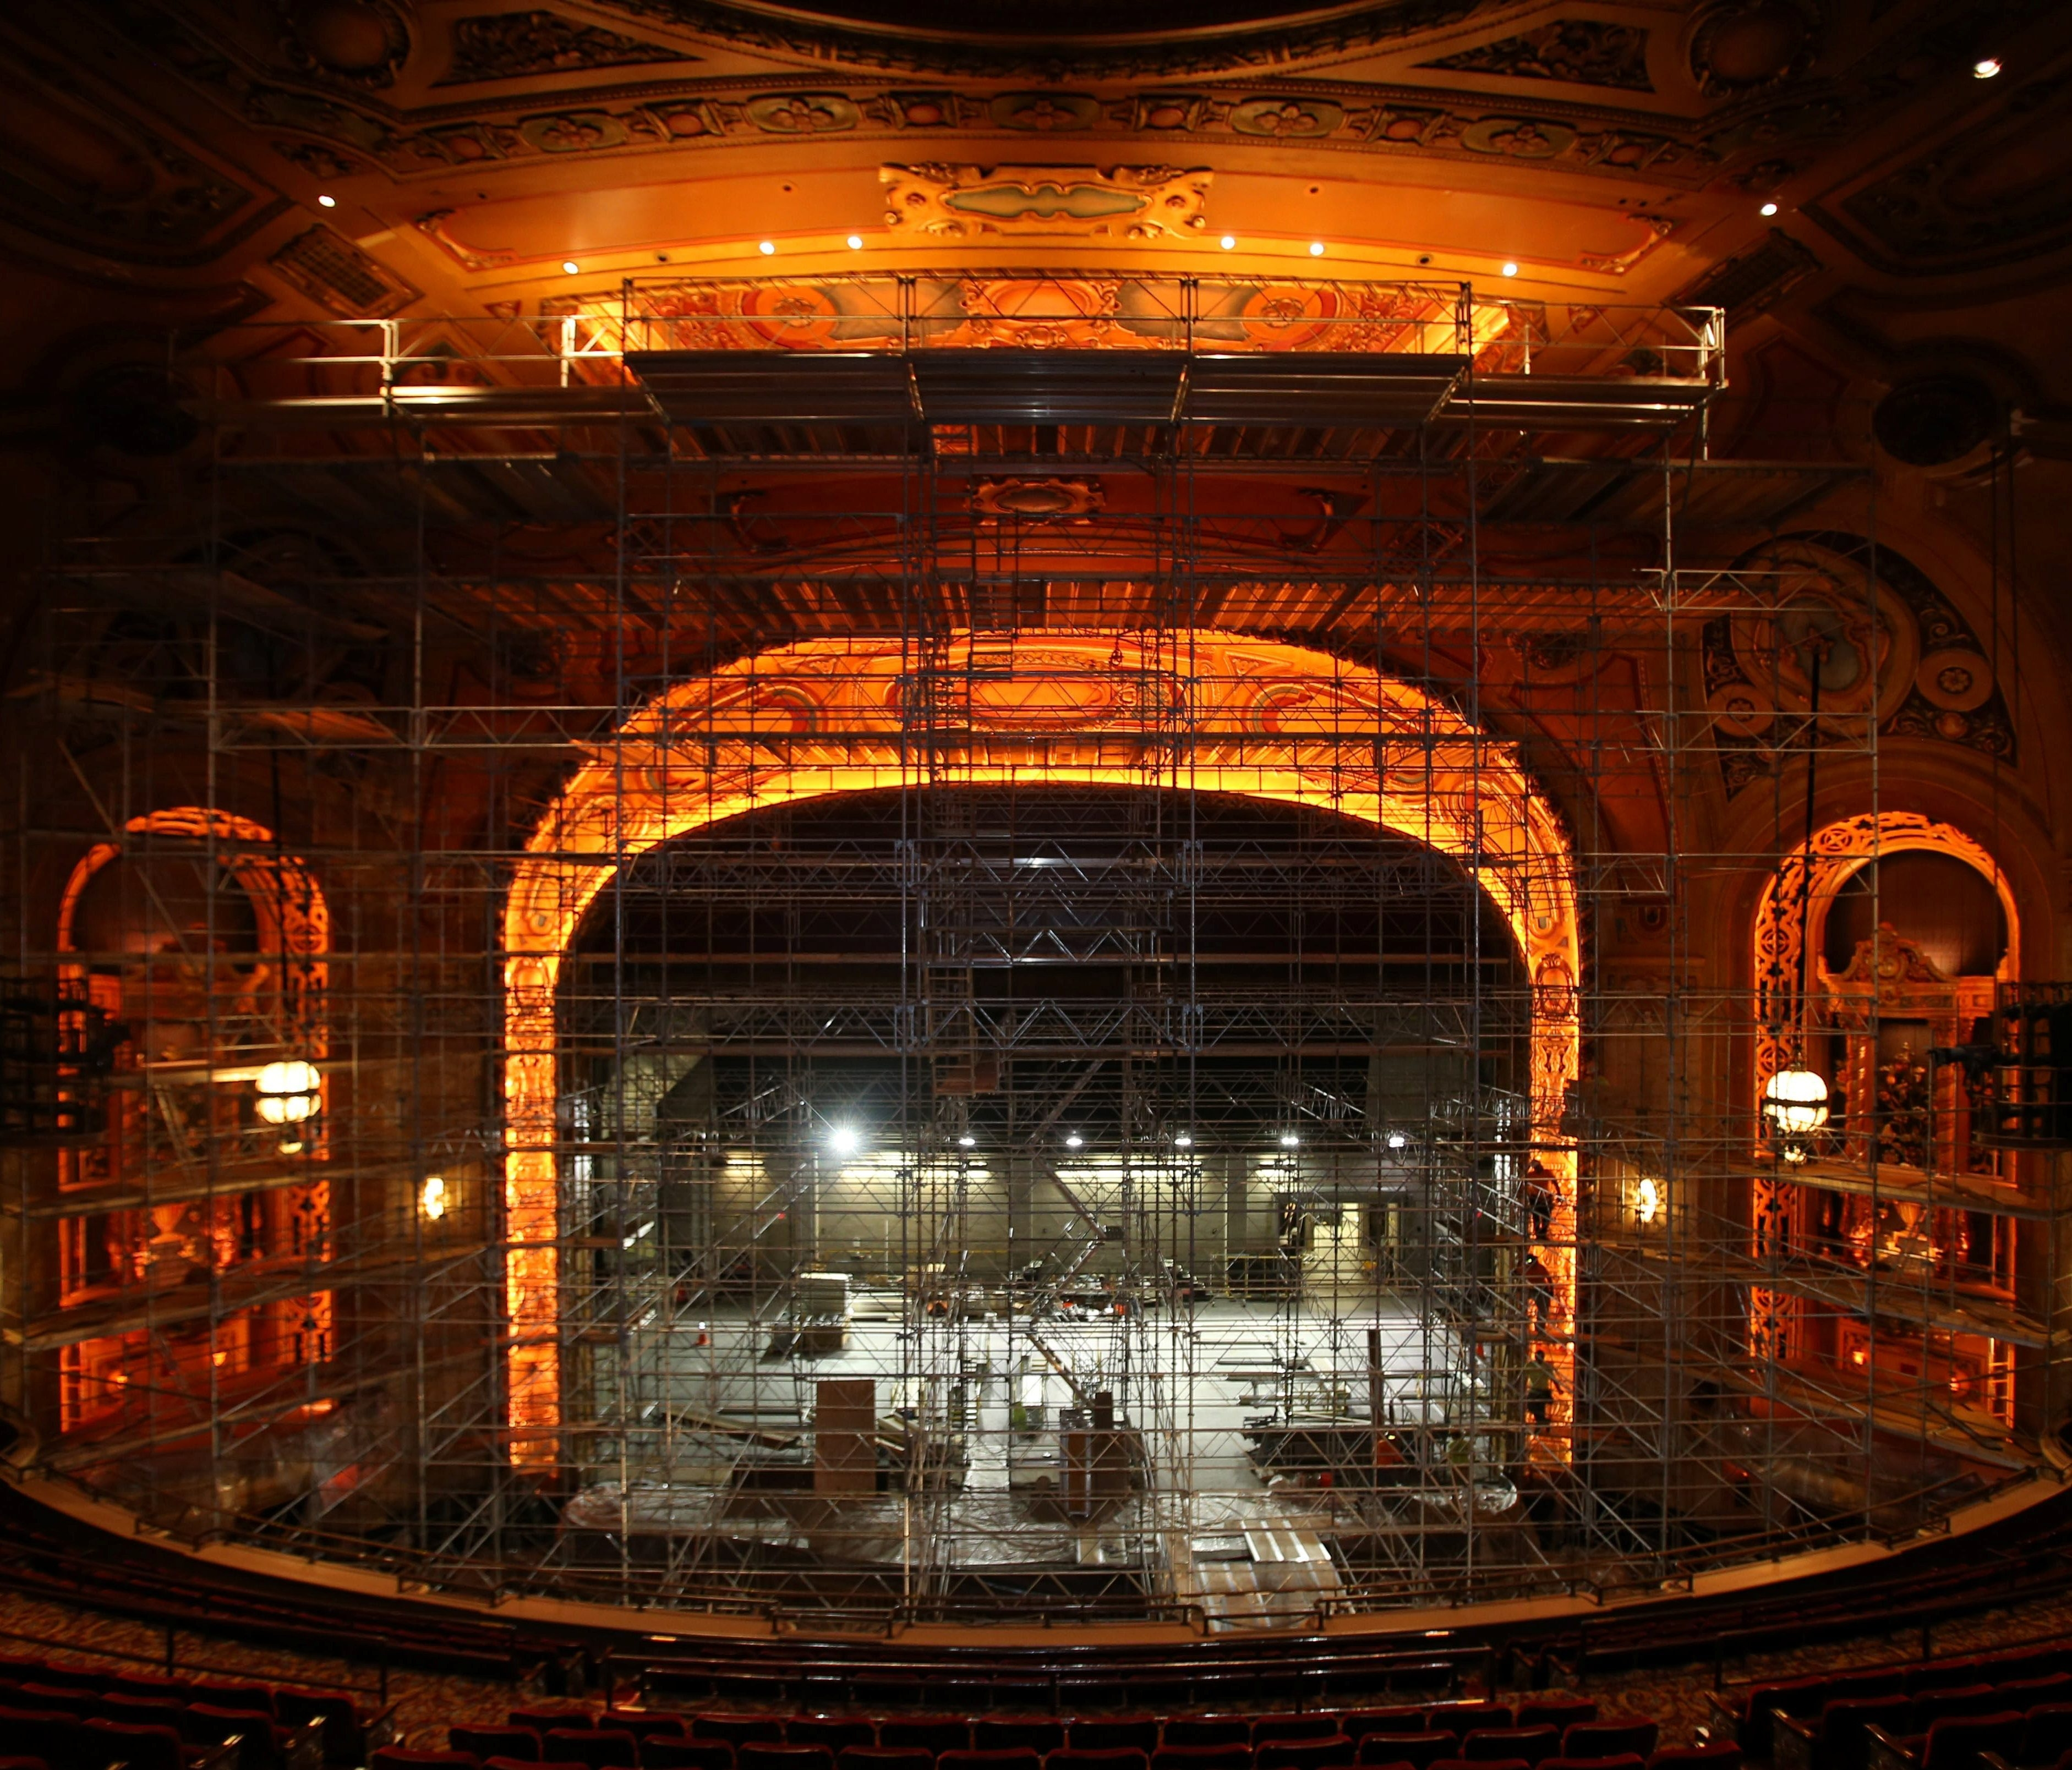 Workers remove scaffolding after completing extensive work on the proscenium and other areas around the stage at Shea's Performing Arts Center.